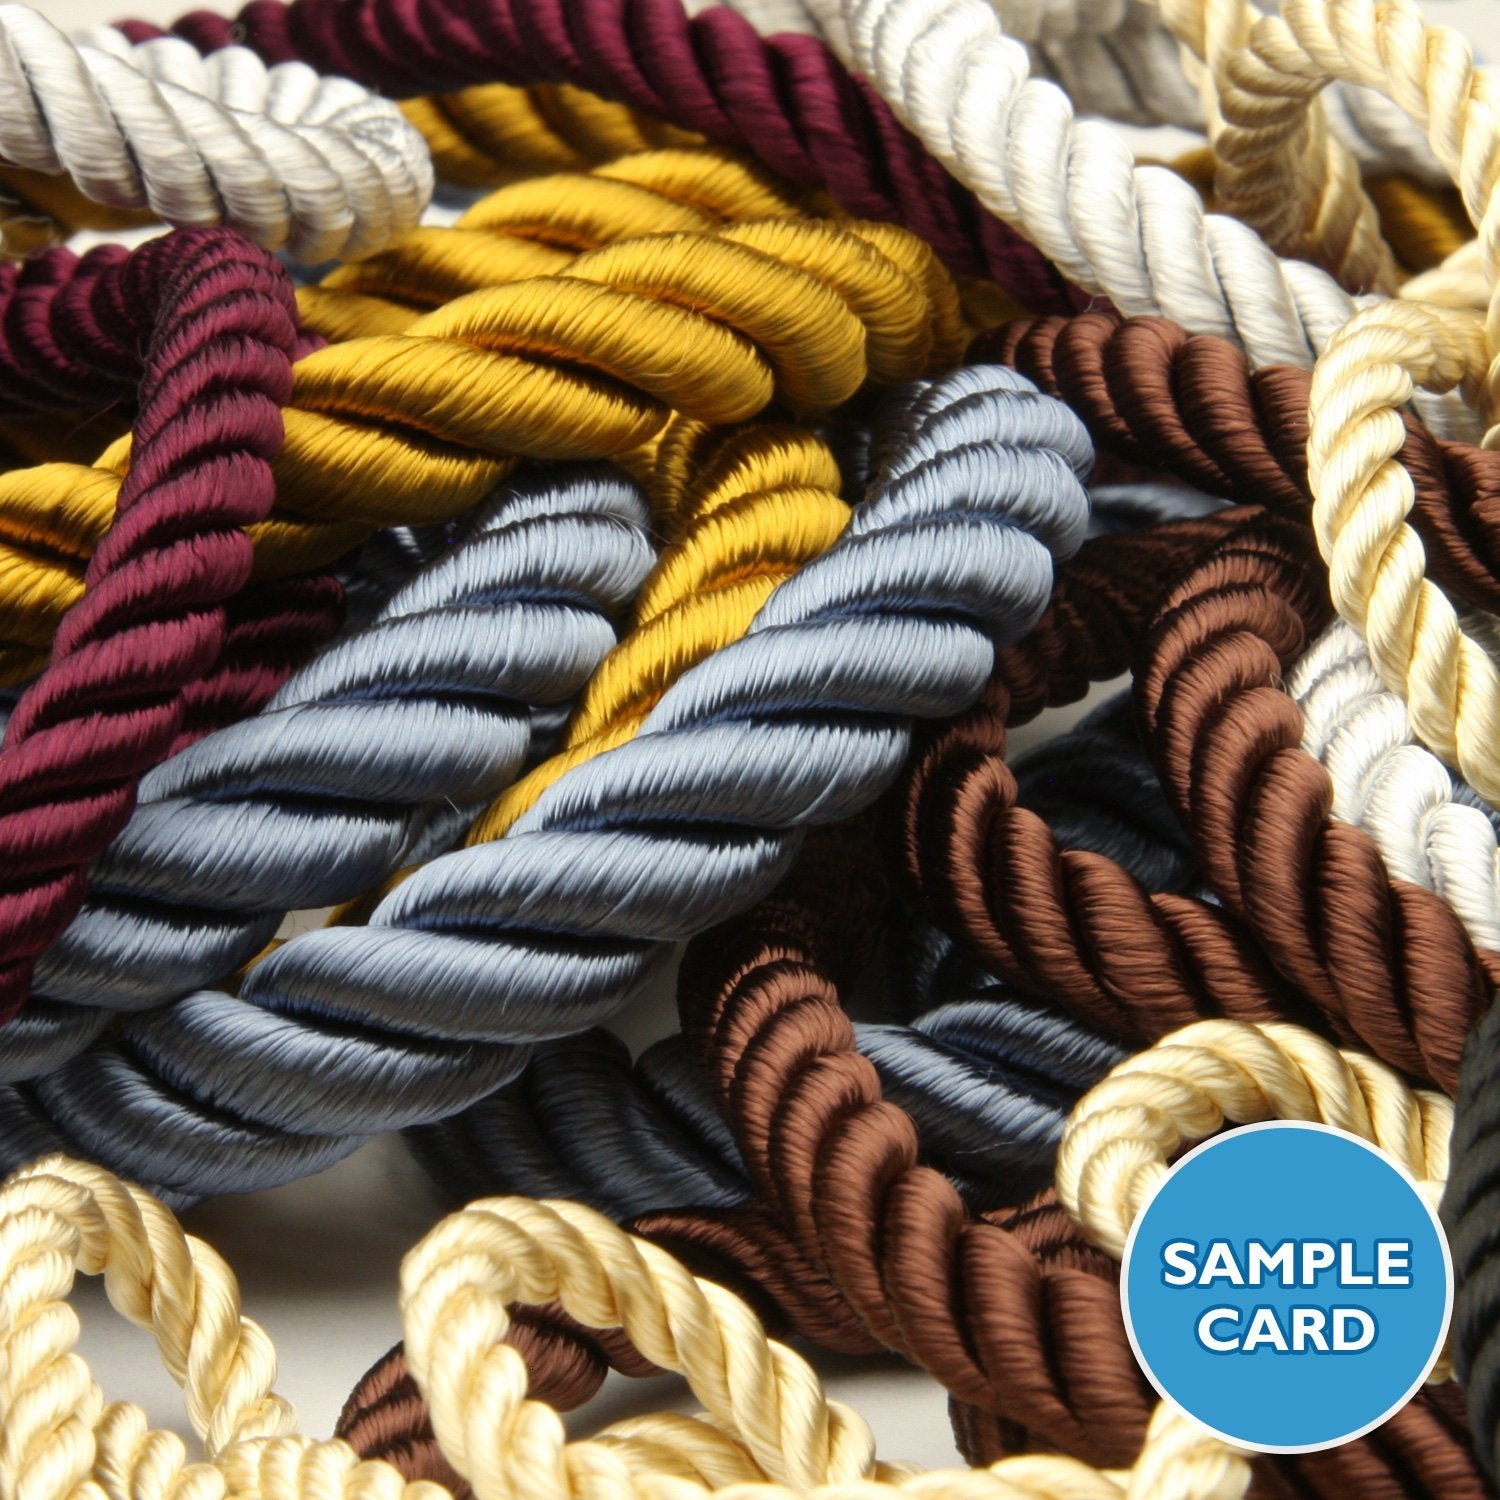 FUJIYAMA RIBBON Sample Card Rayon Twist Cord (FY-6080)